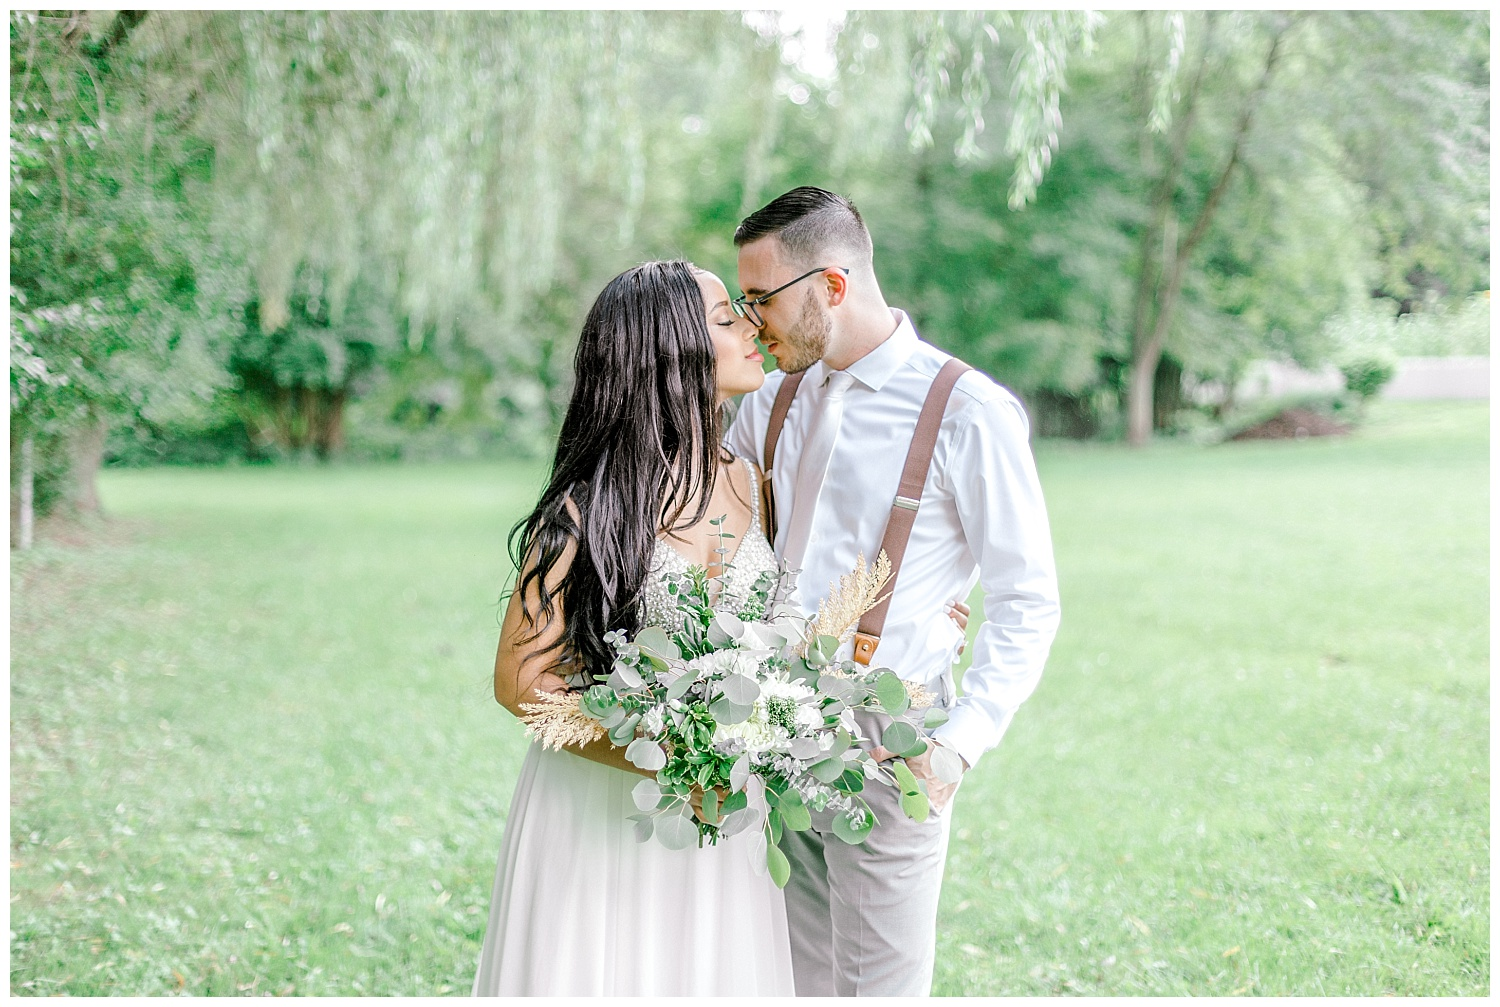 Olive green and white rustic barn wedding at burnside plantation in bethlehem pennsylvania by PA based destination wedding and lifestyle photographer Lytle photography (17).jpg